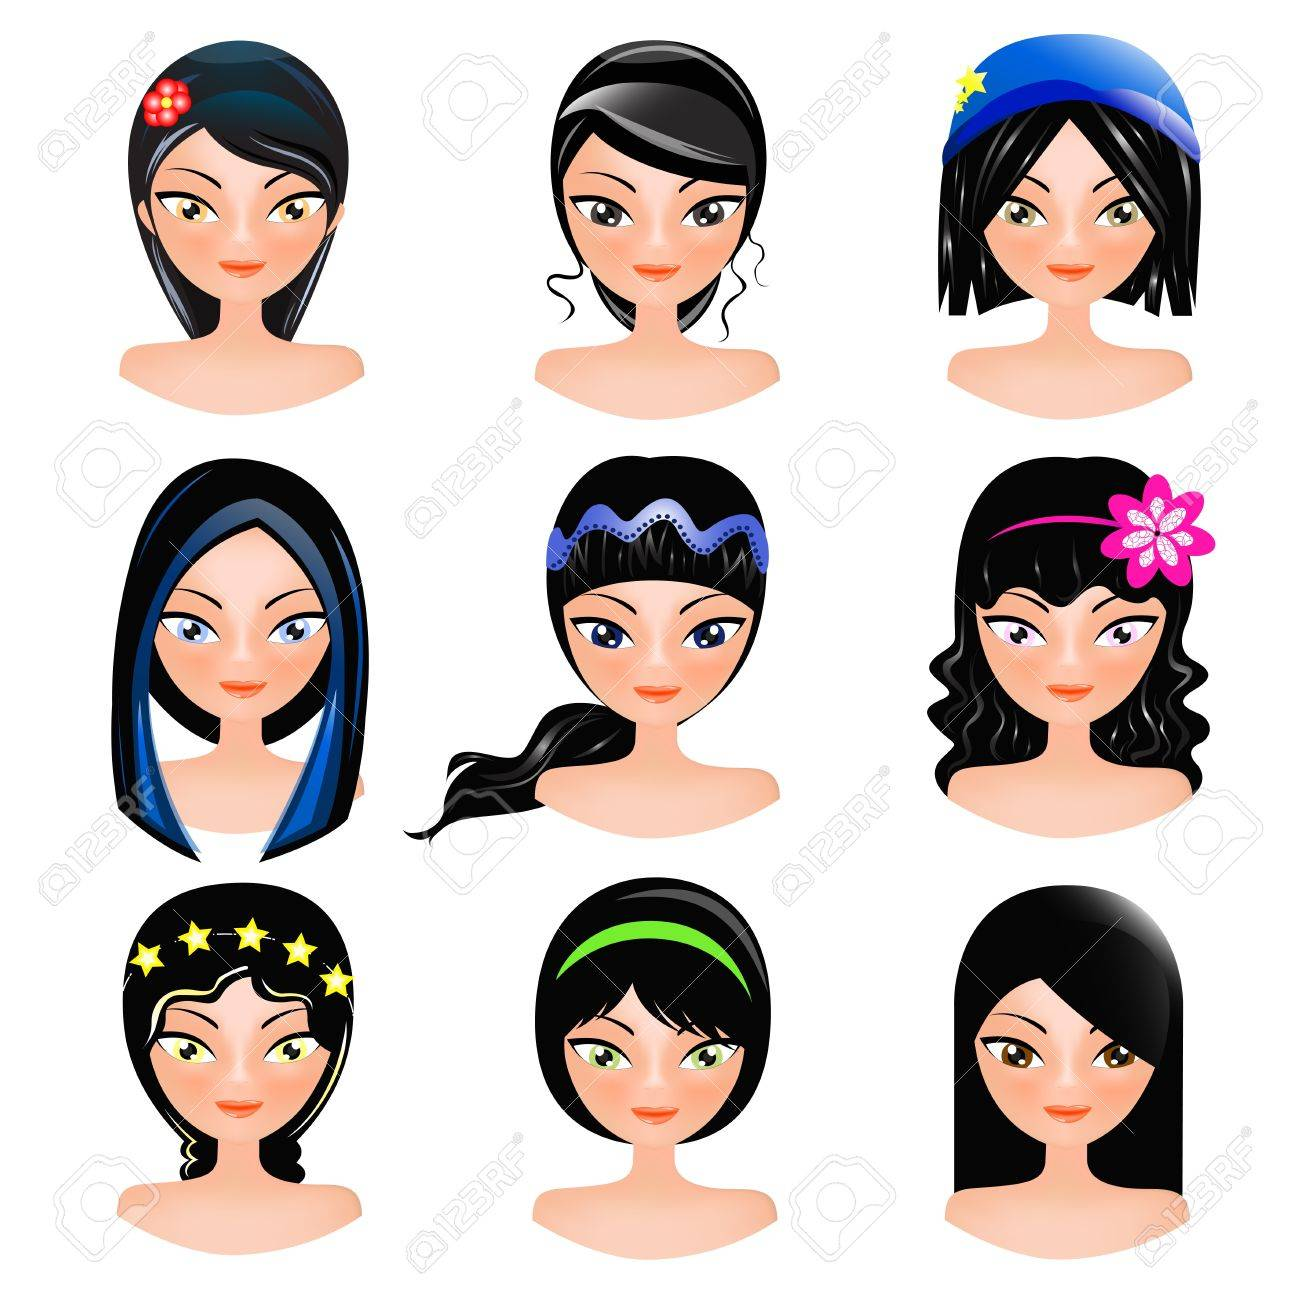 face of women cartoon royalty free cliparts vectors and stock rh 123rf com cartoon woman into alligator mouth cartoon woman packing